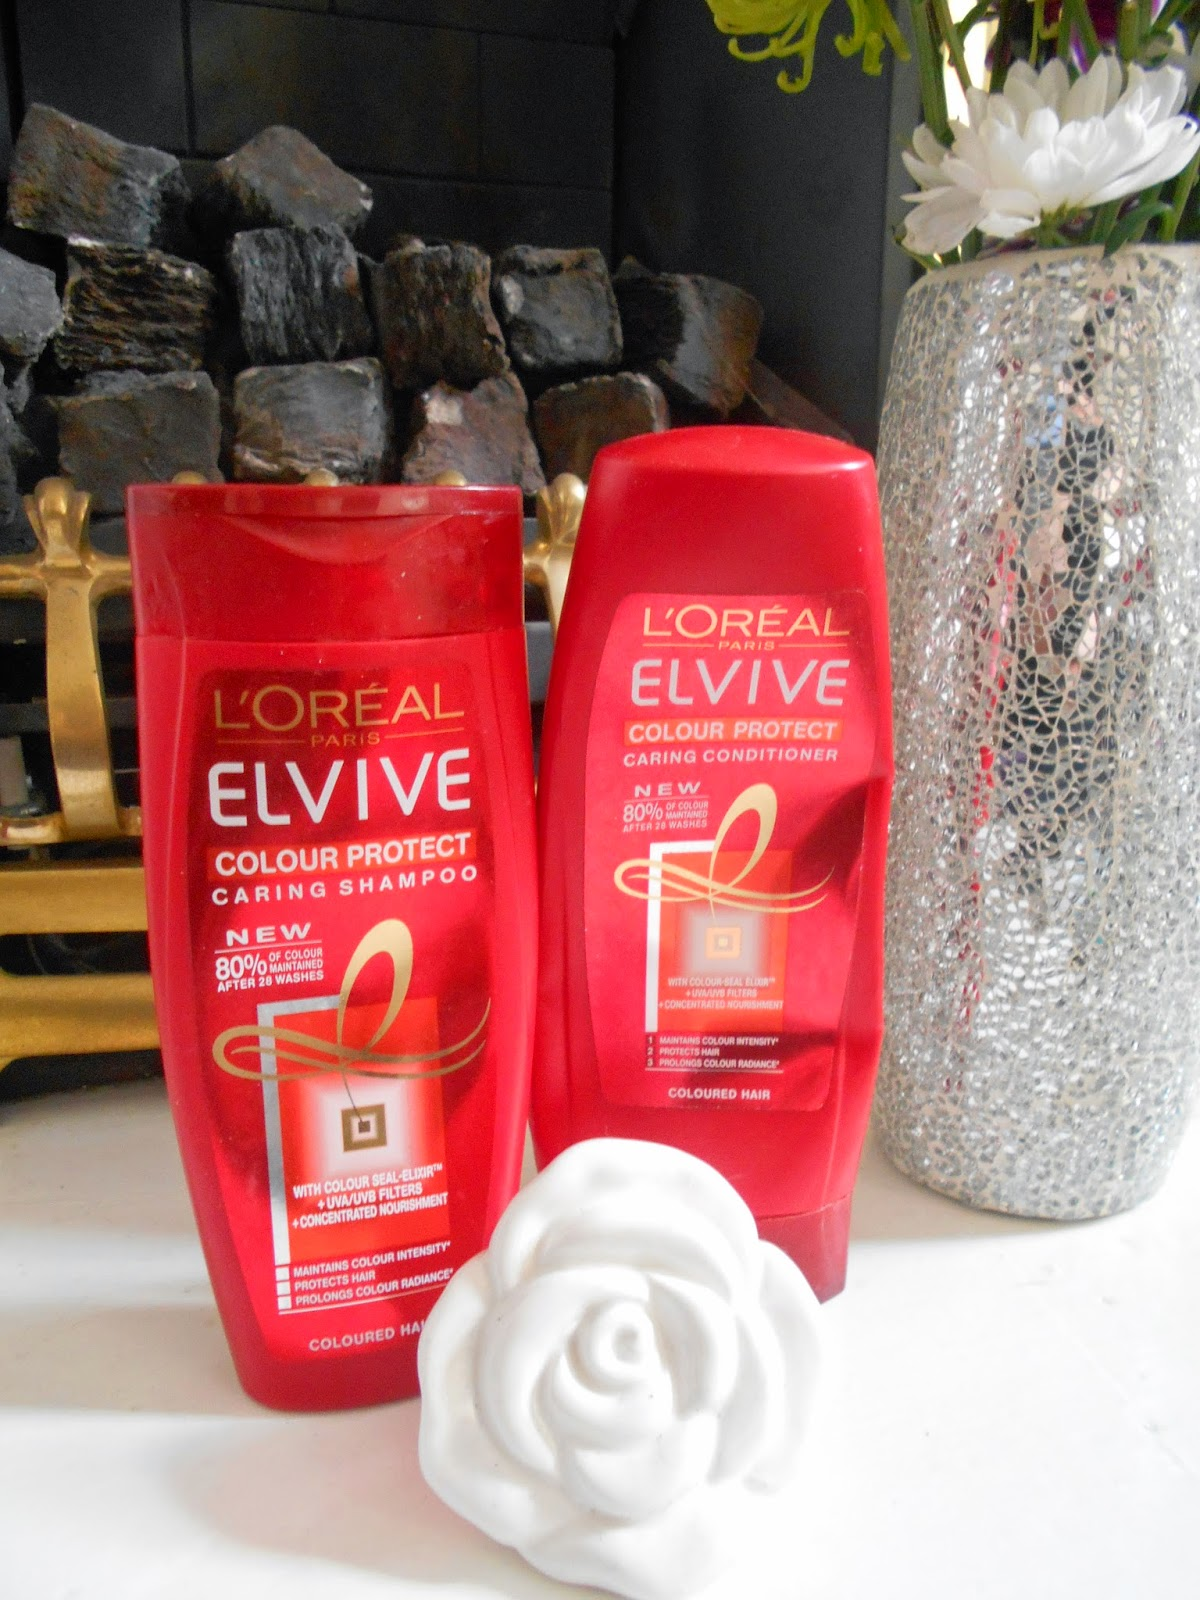 L'Oreal Colour Protect Shampoo and Conditioner